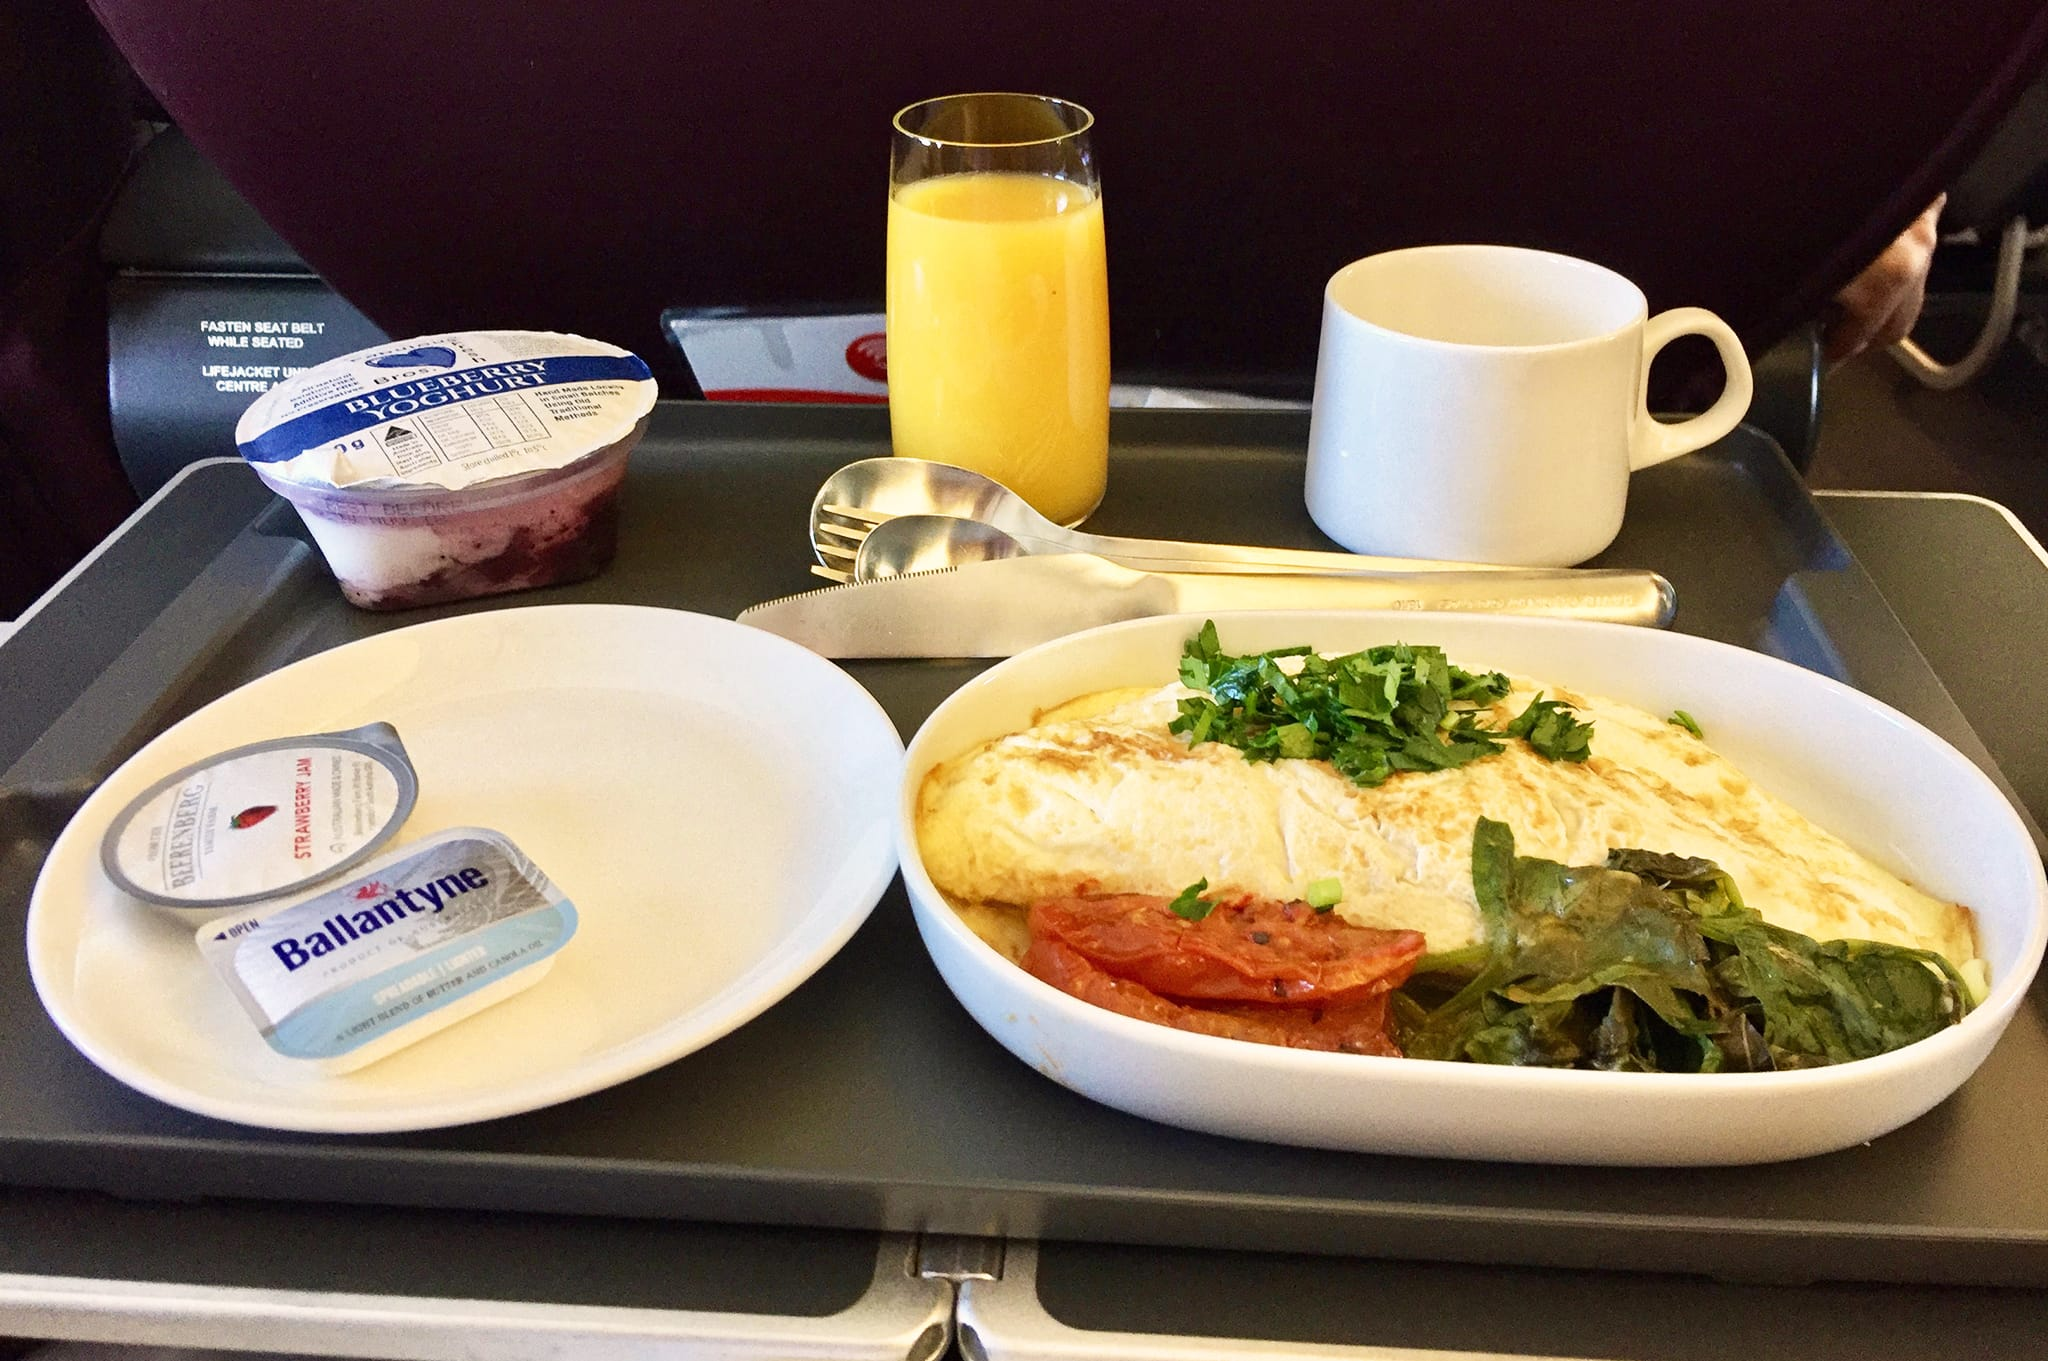 Qantas 737 Business Class Breakfast